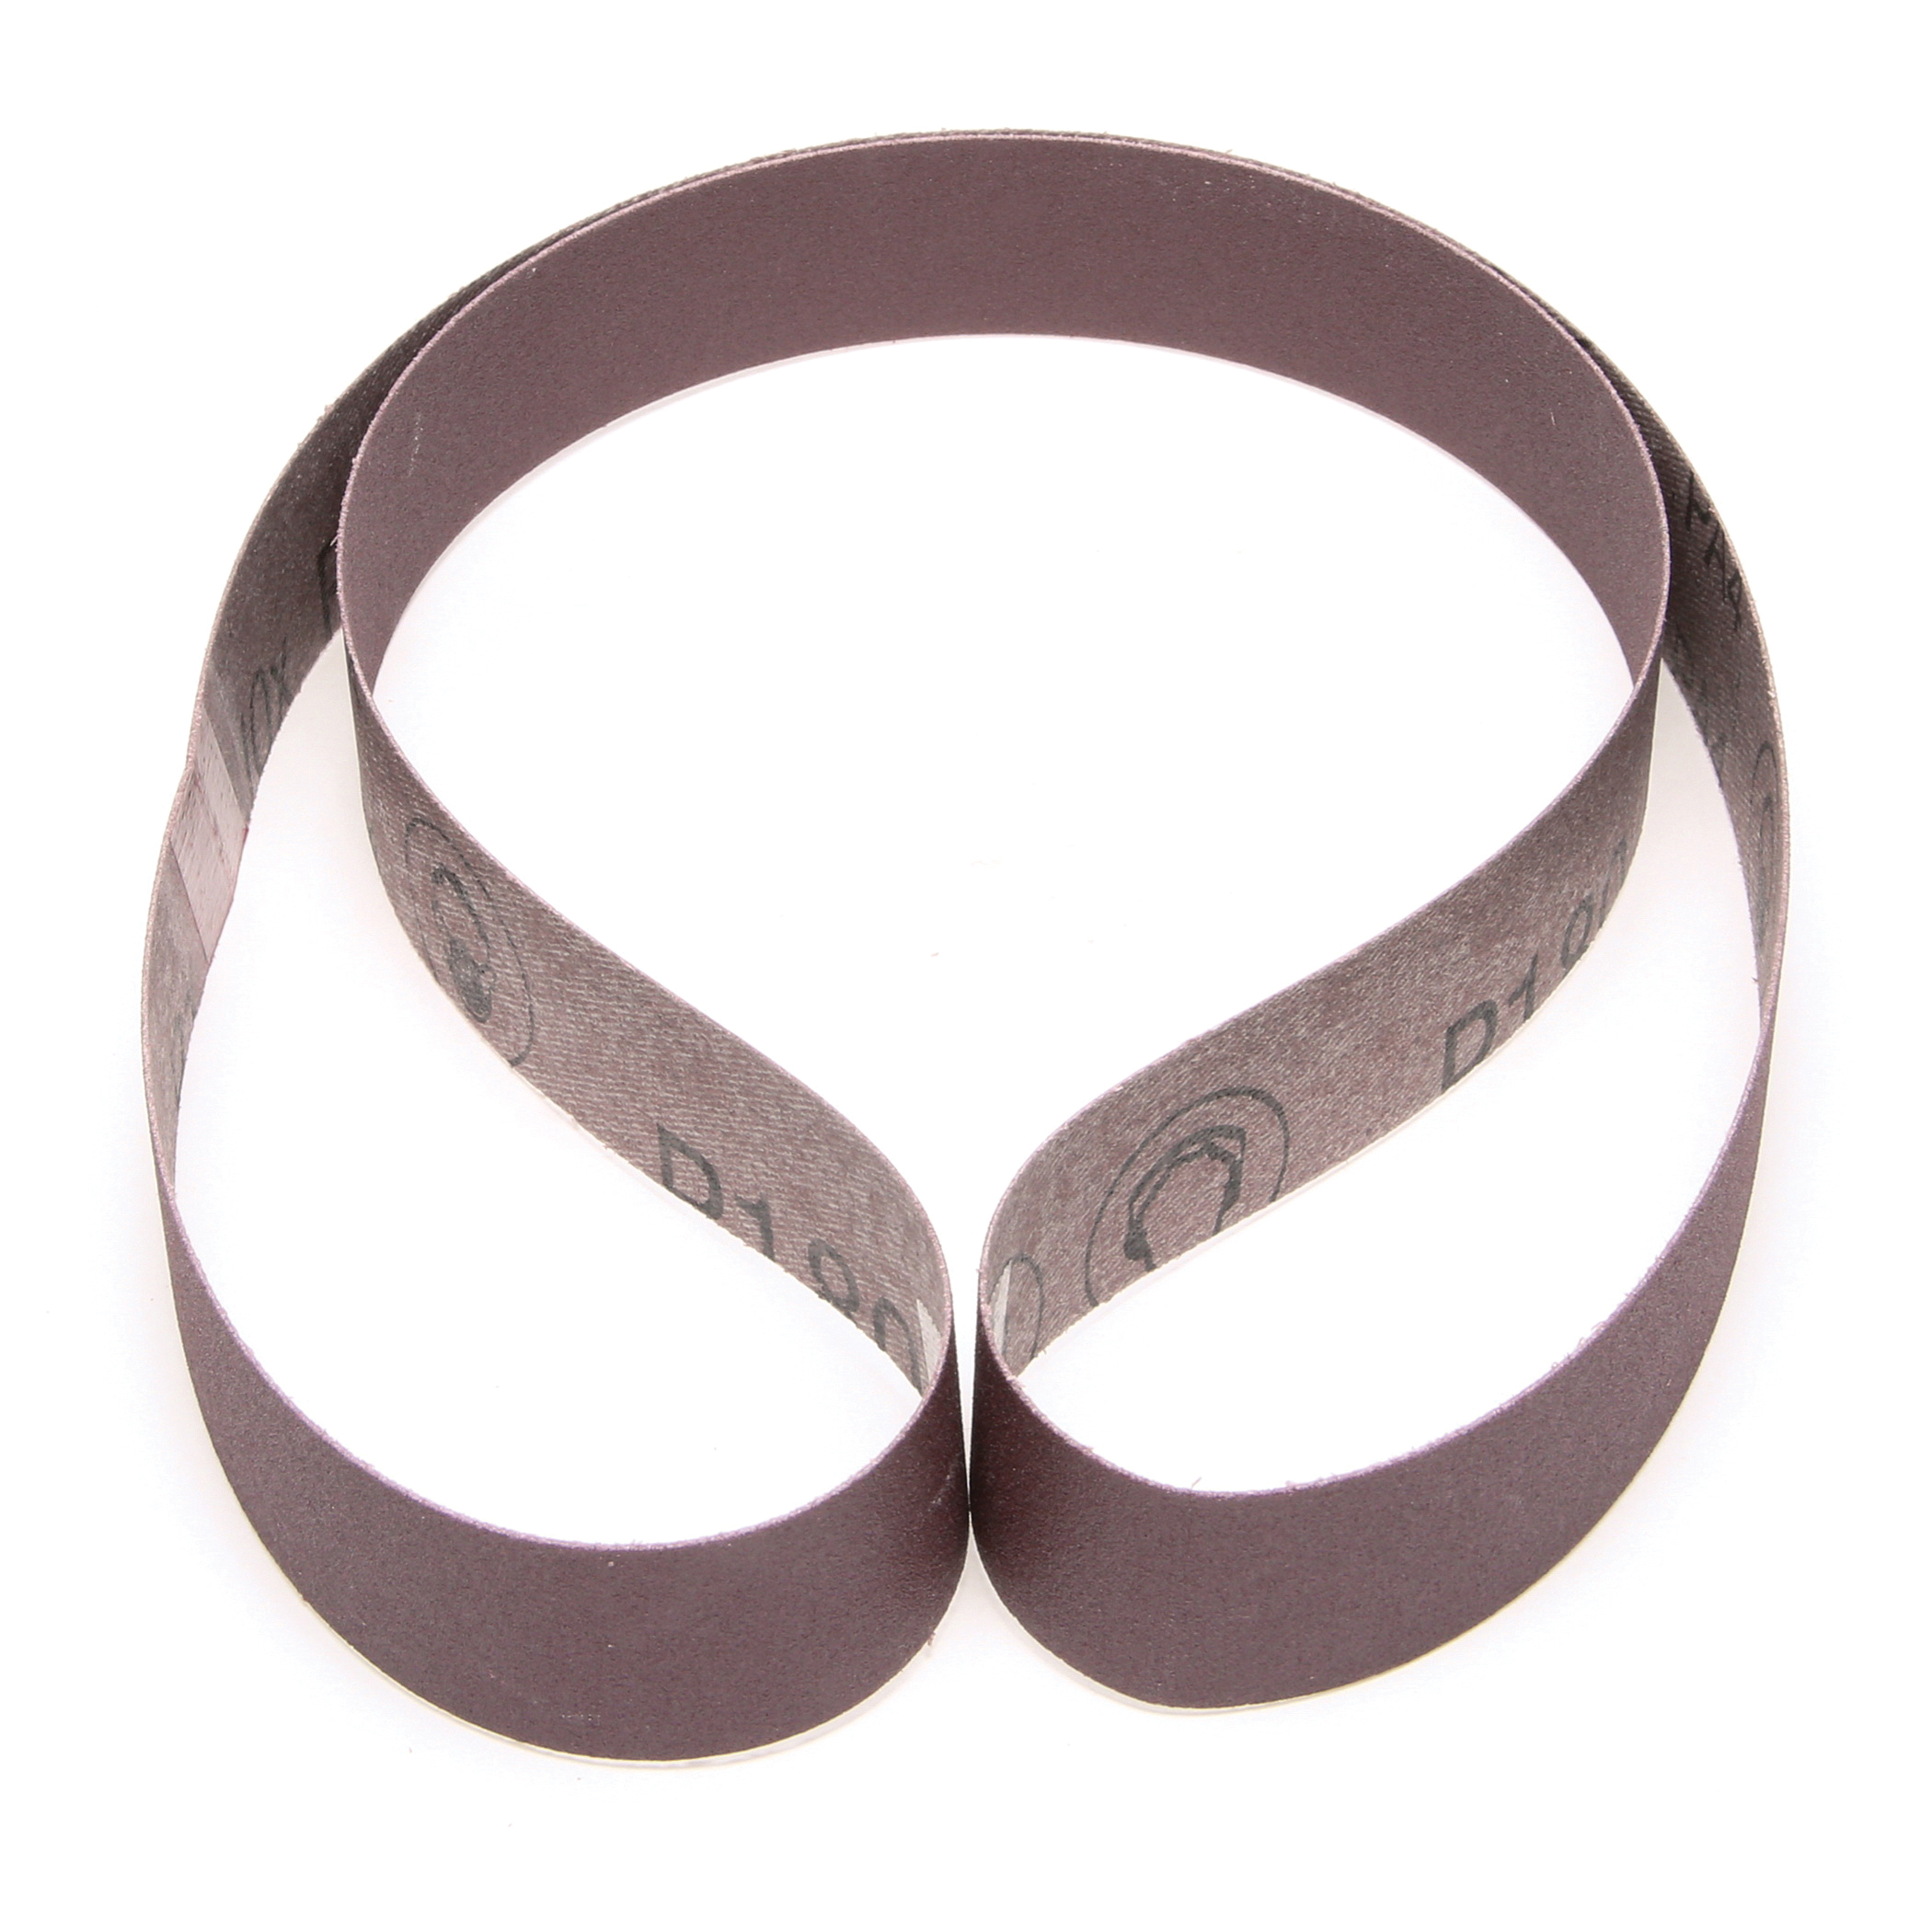 3M™ 051144-26601 341D Narrow Abrasive Belt, 1 in W x 42 in L, P180 Grit, Very Fine Grade, Aluminum Oxide Abrasive, Cloth Backing